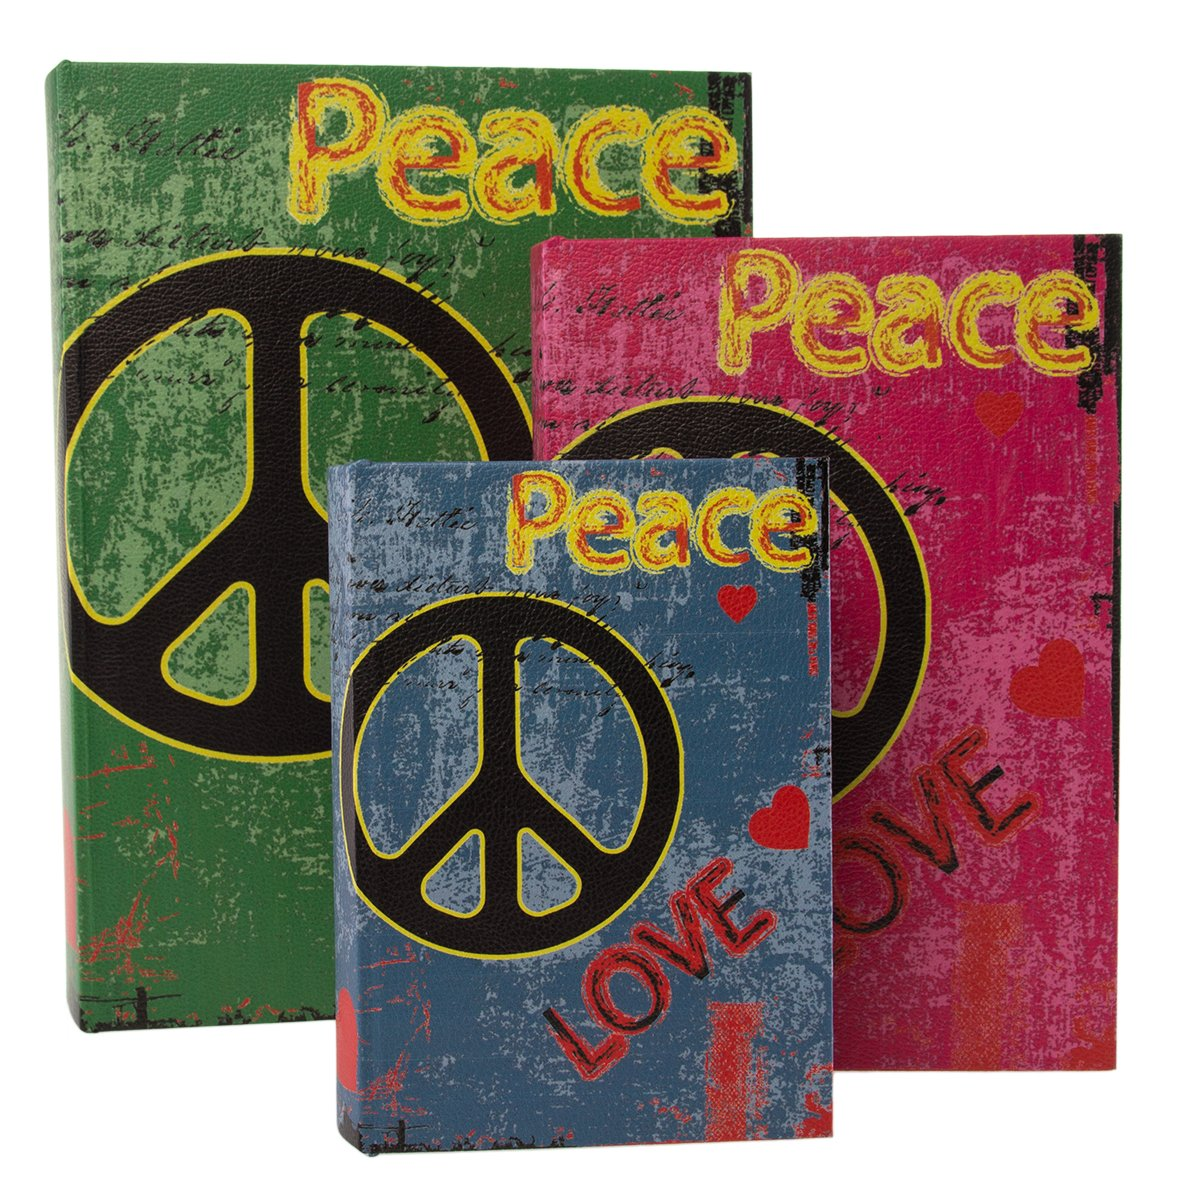 Cheungs Rattan FP-3532-3A Set of 3 Book Box with Wild Colors, Peace and Love printed on vinyl - Green, Pink, Blue, Yellow, Black, red